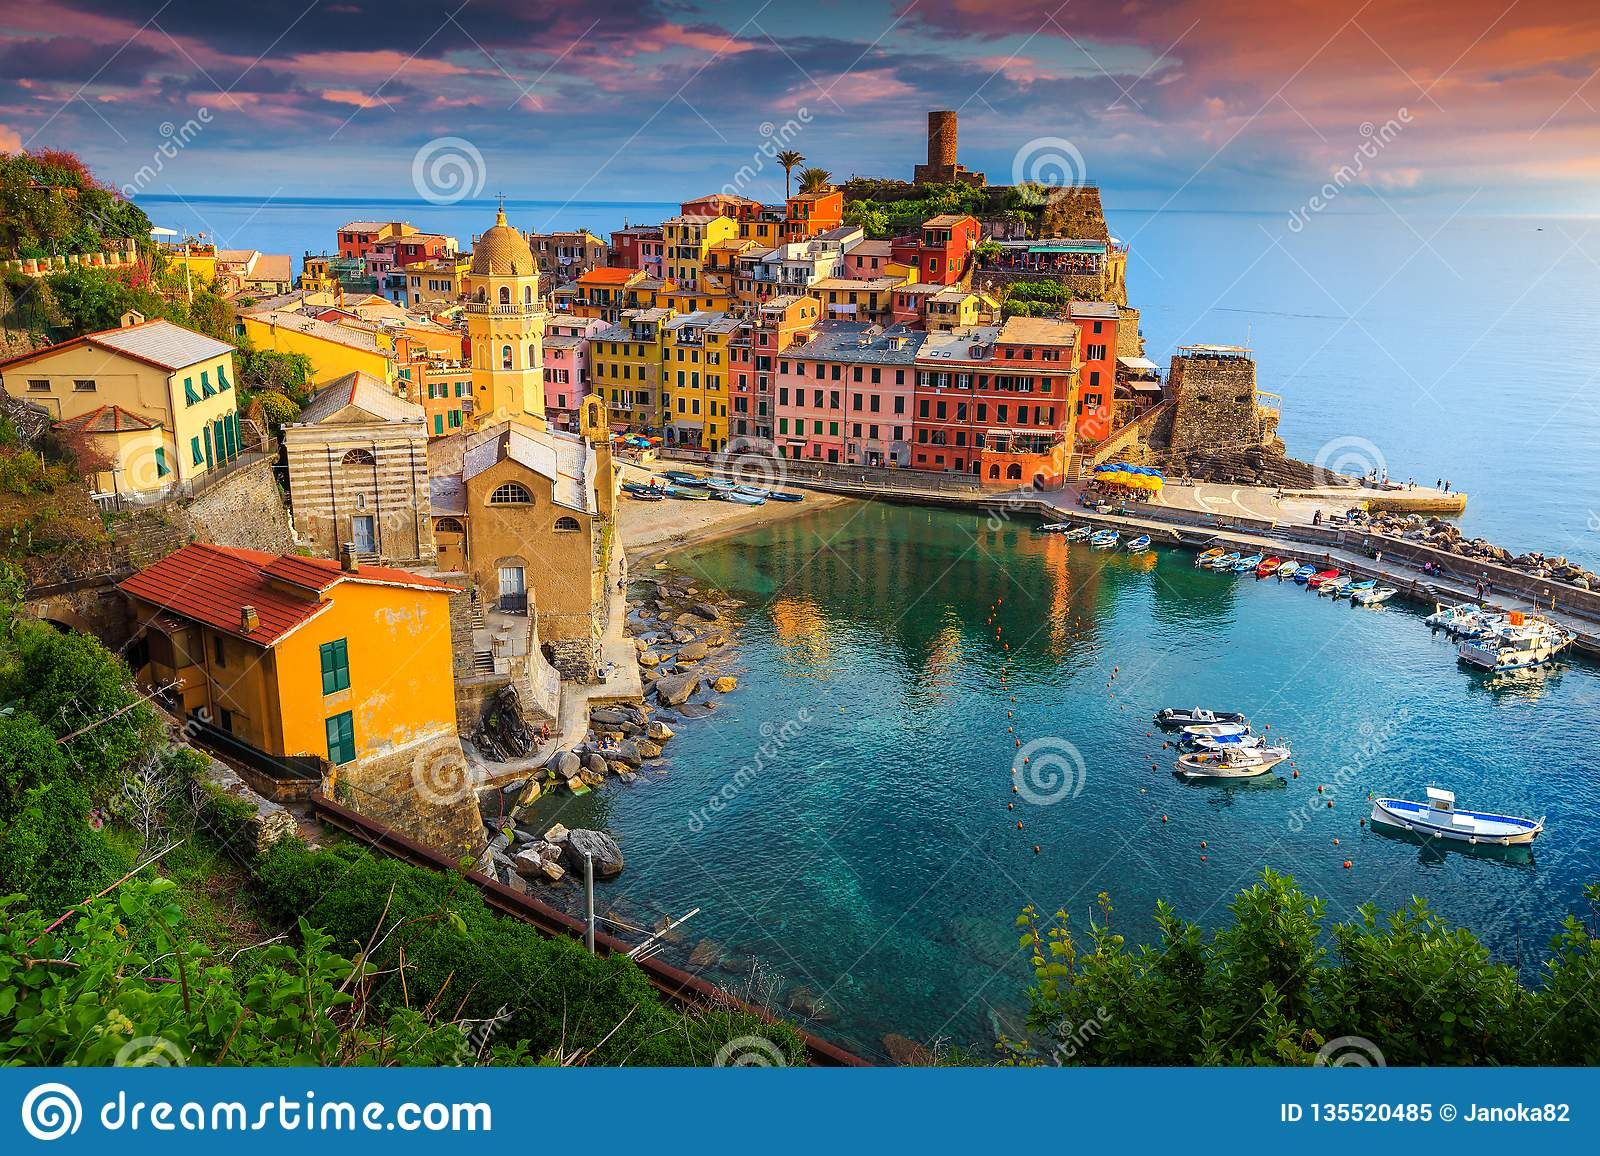 Gorgeous Vernazza village with colorful houses, Cinque Terre, Italy, Europe